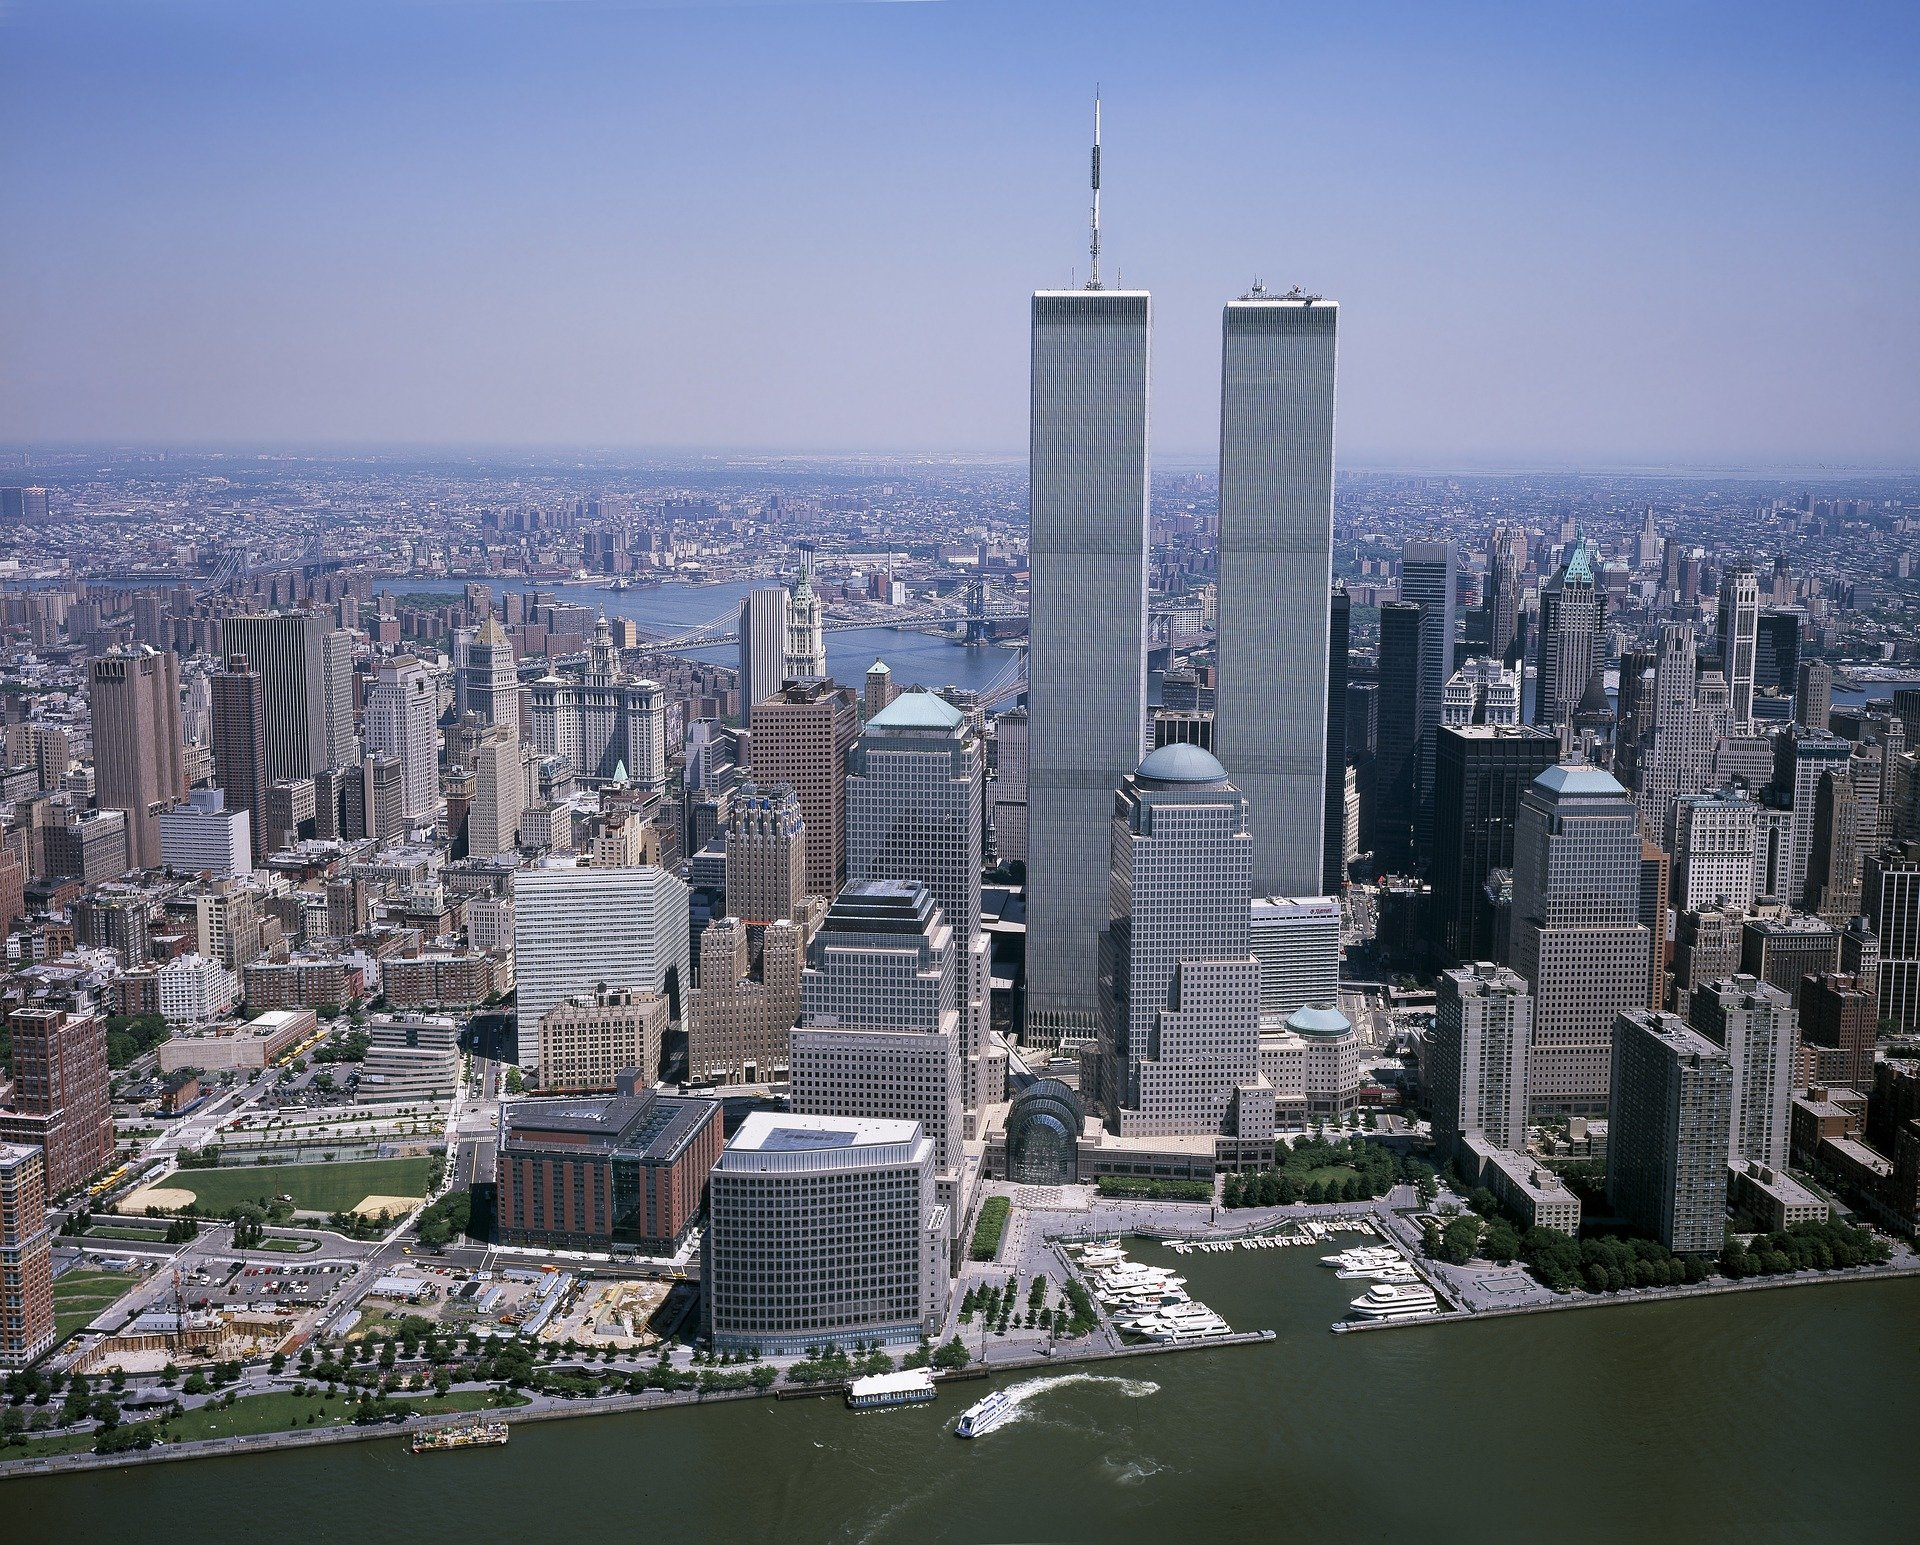 September 11th, 20 years later